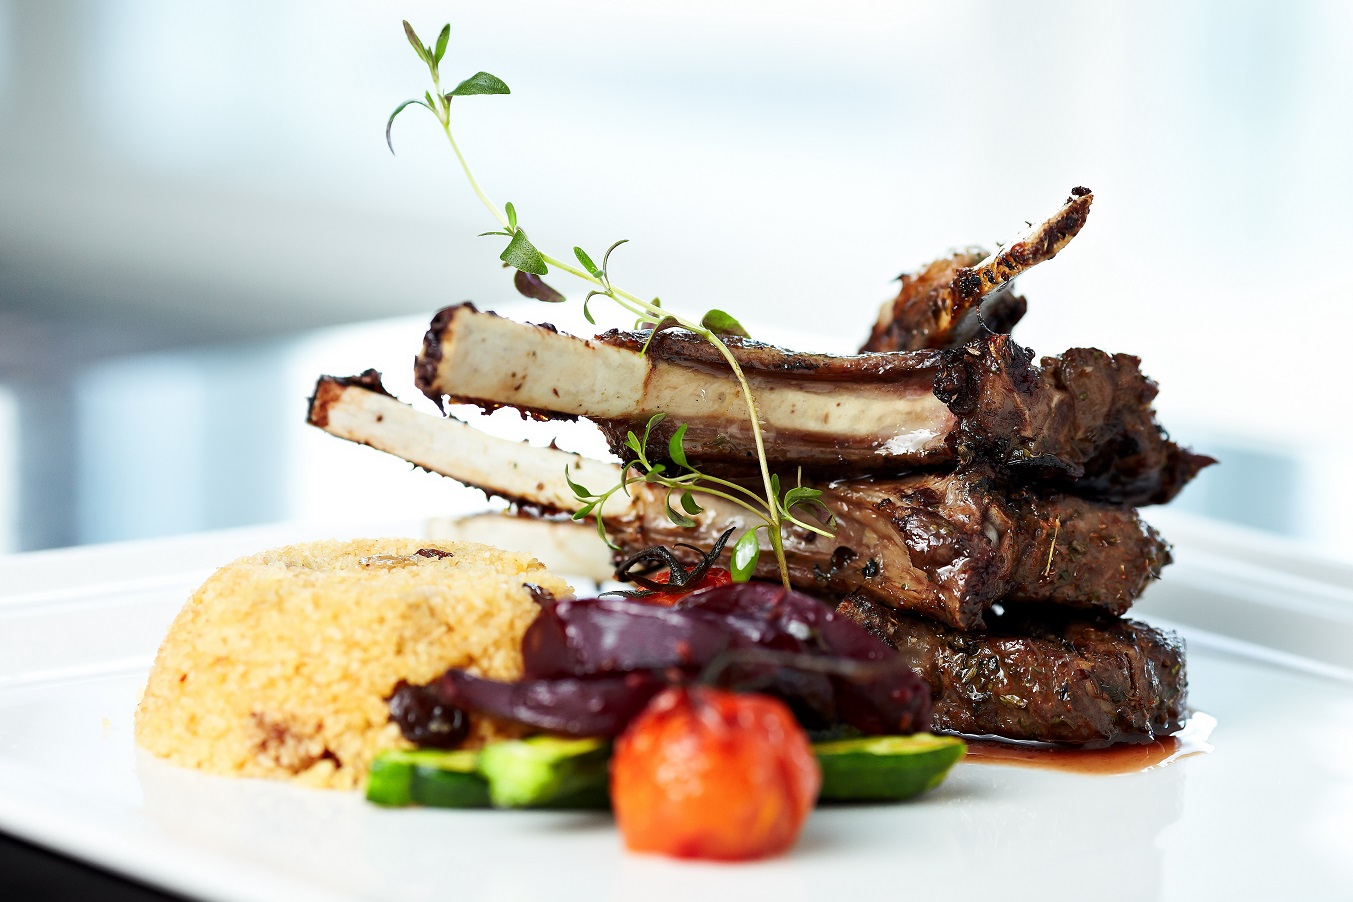 Lamb chop on bed of couscous